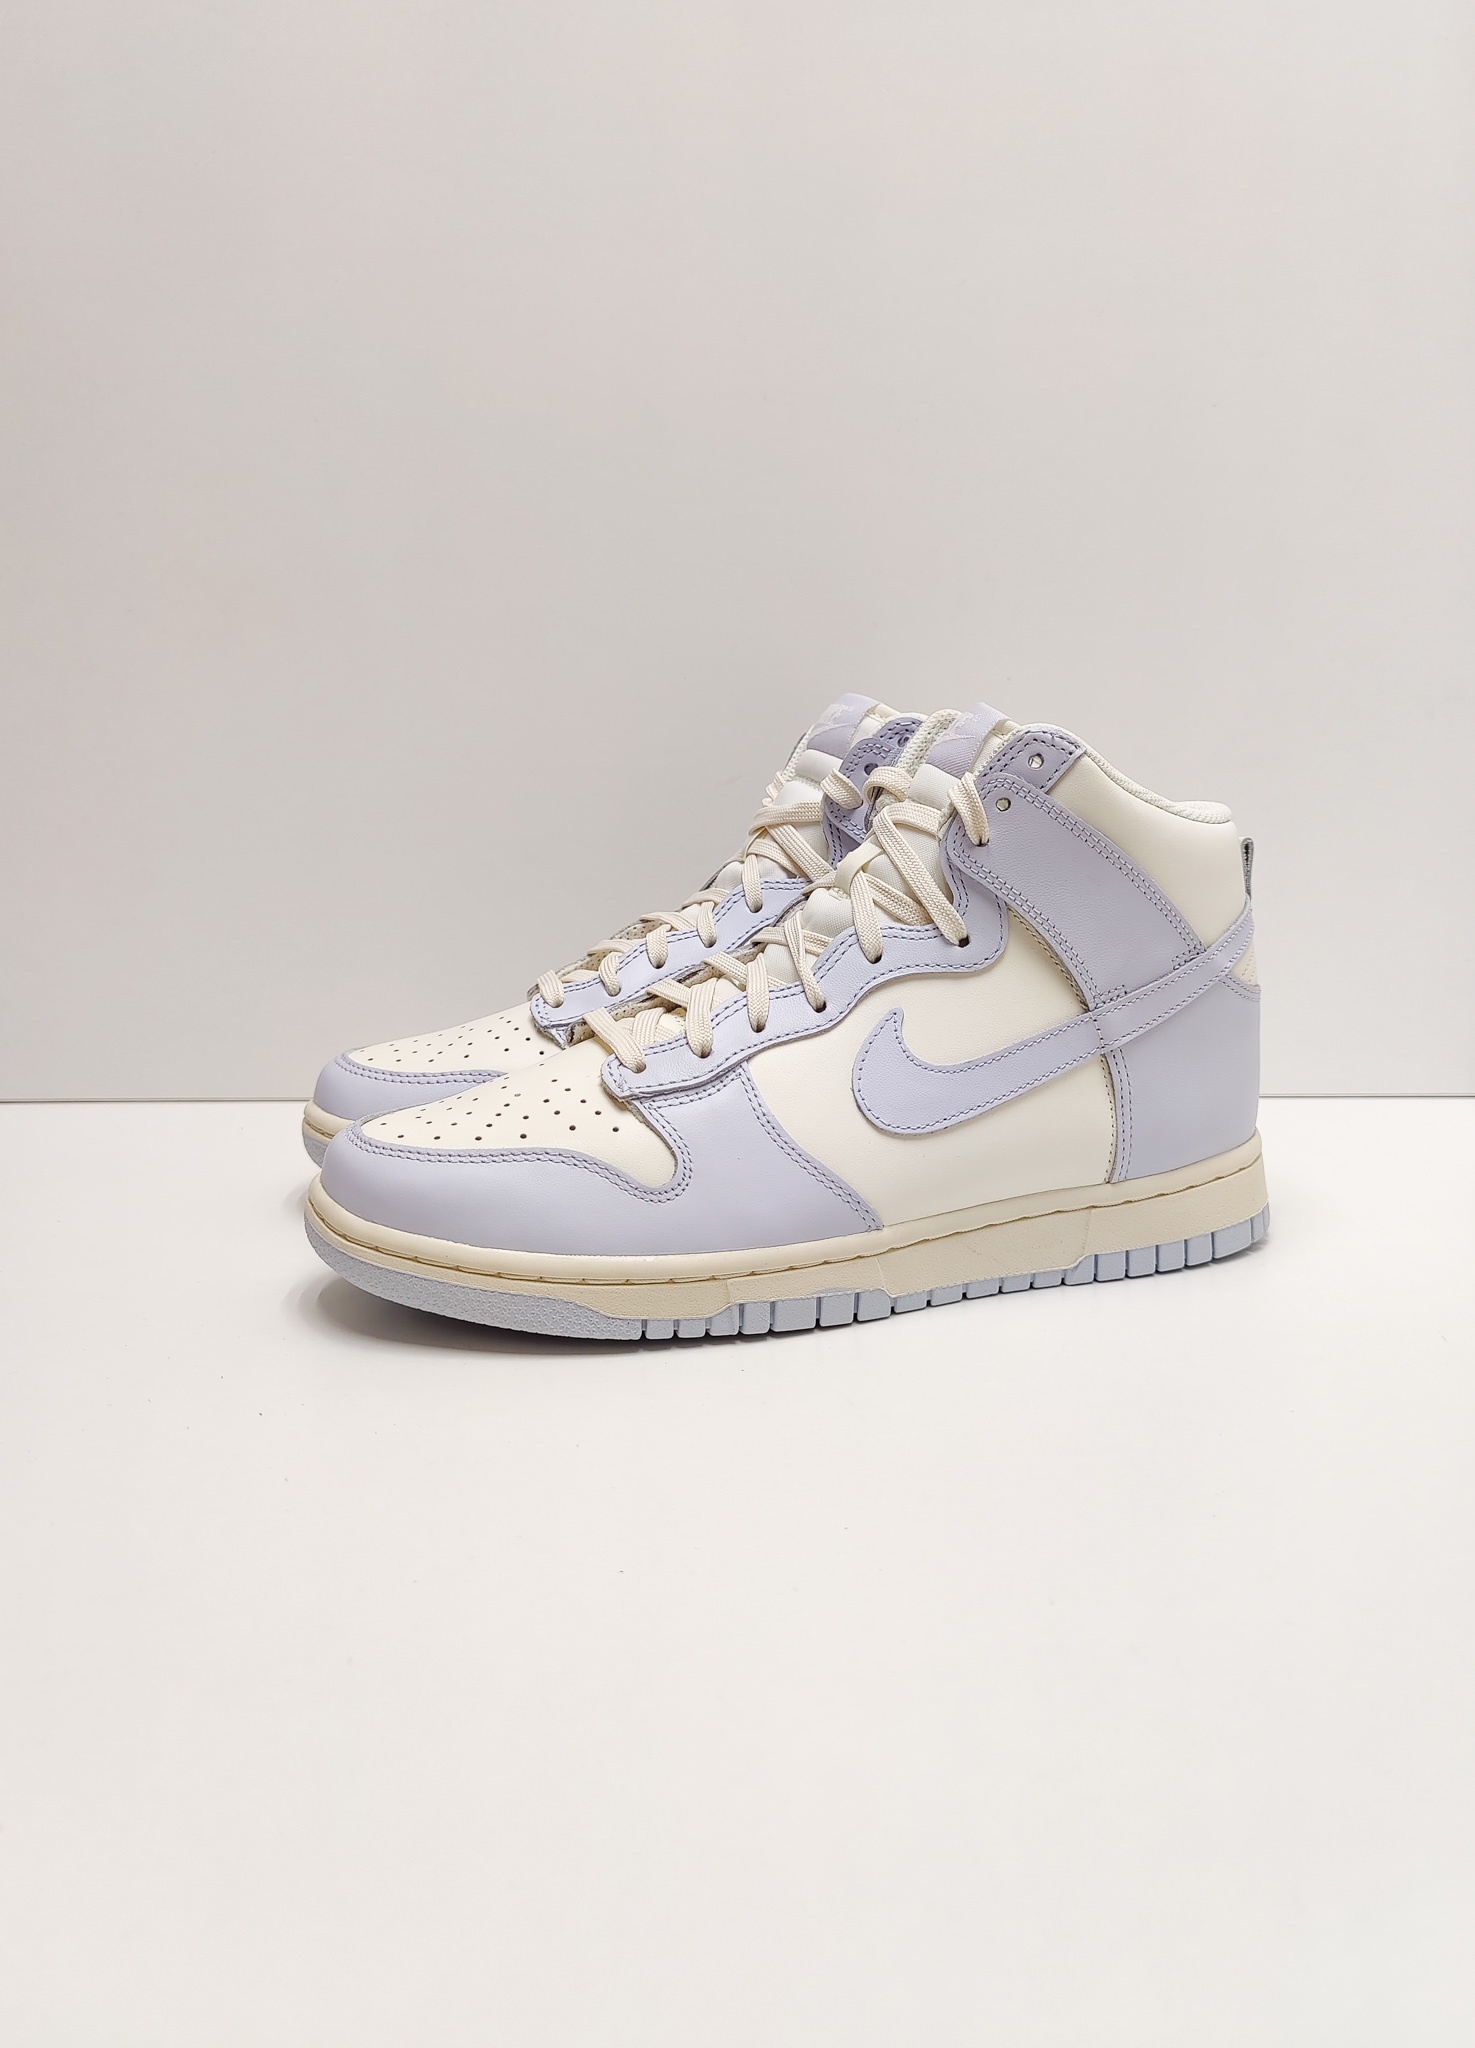 Nike Dunk High Sail Football Grey (W)